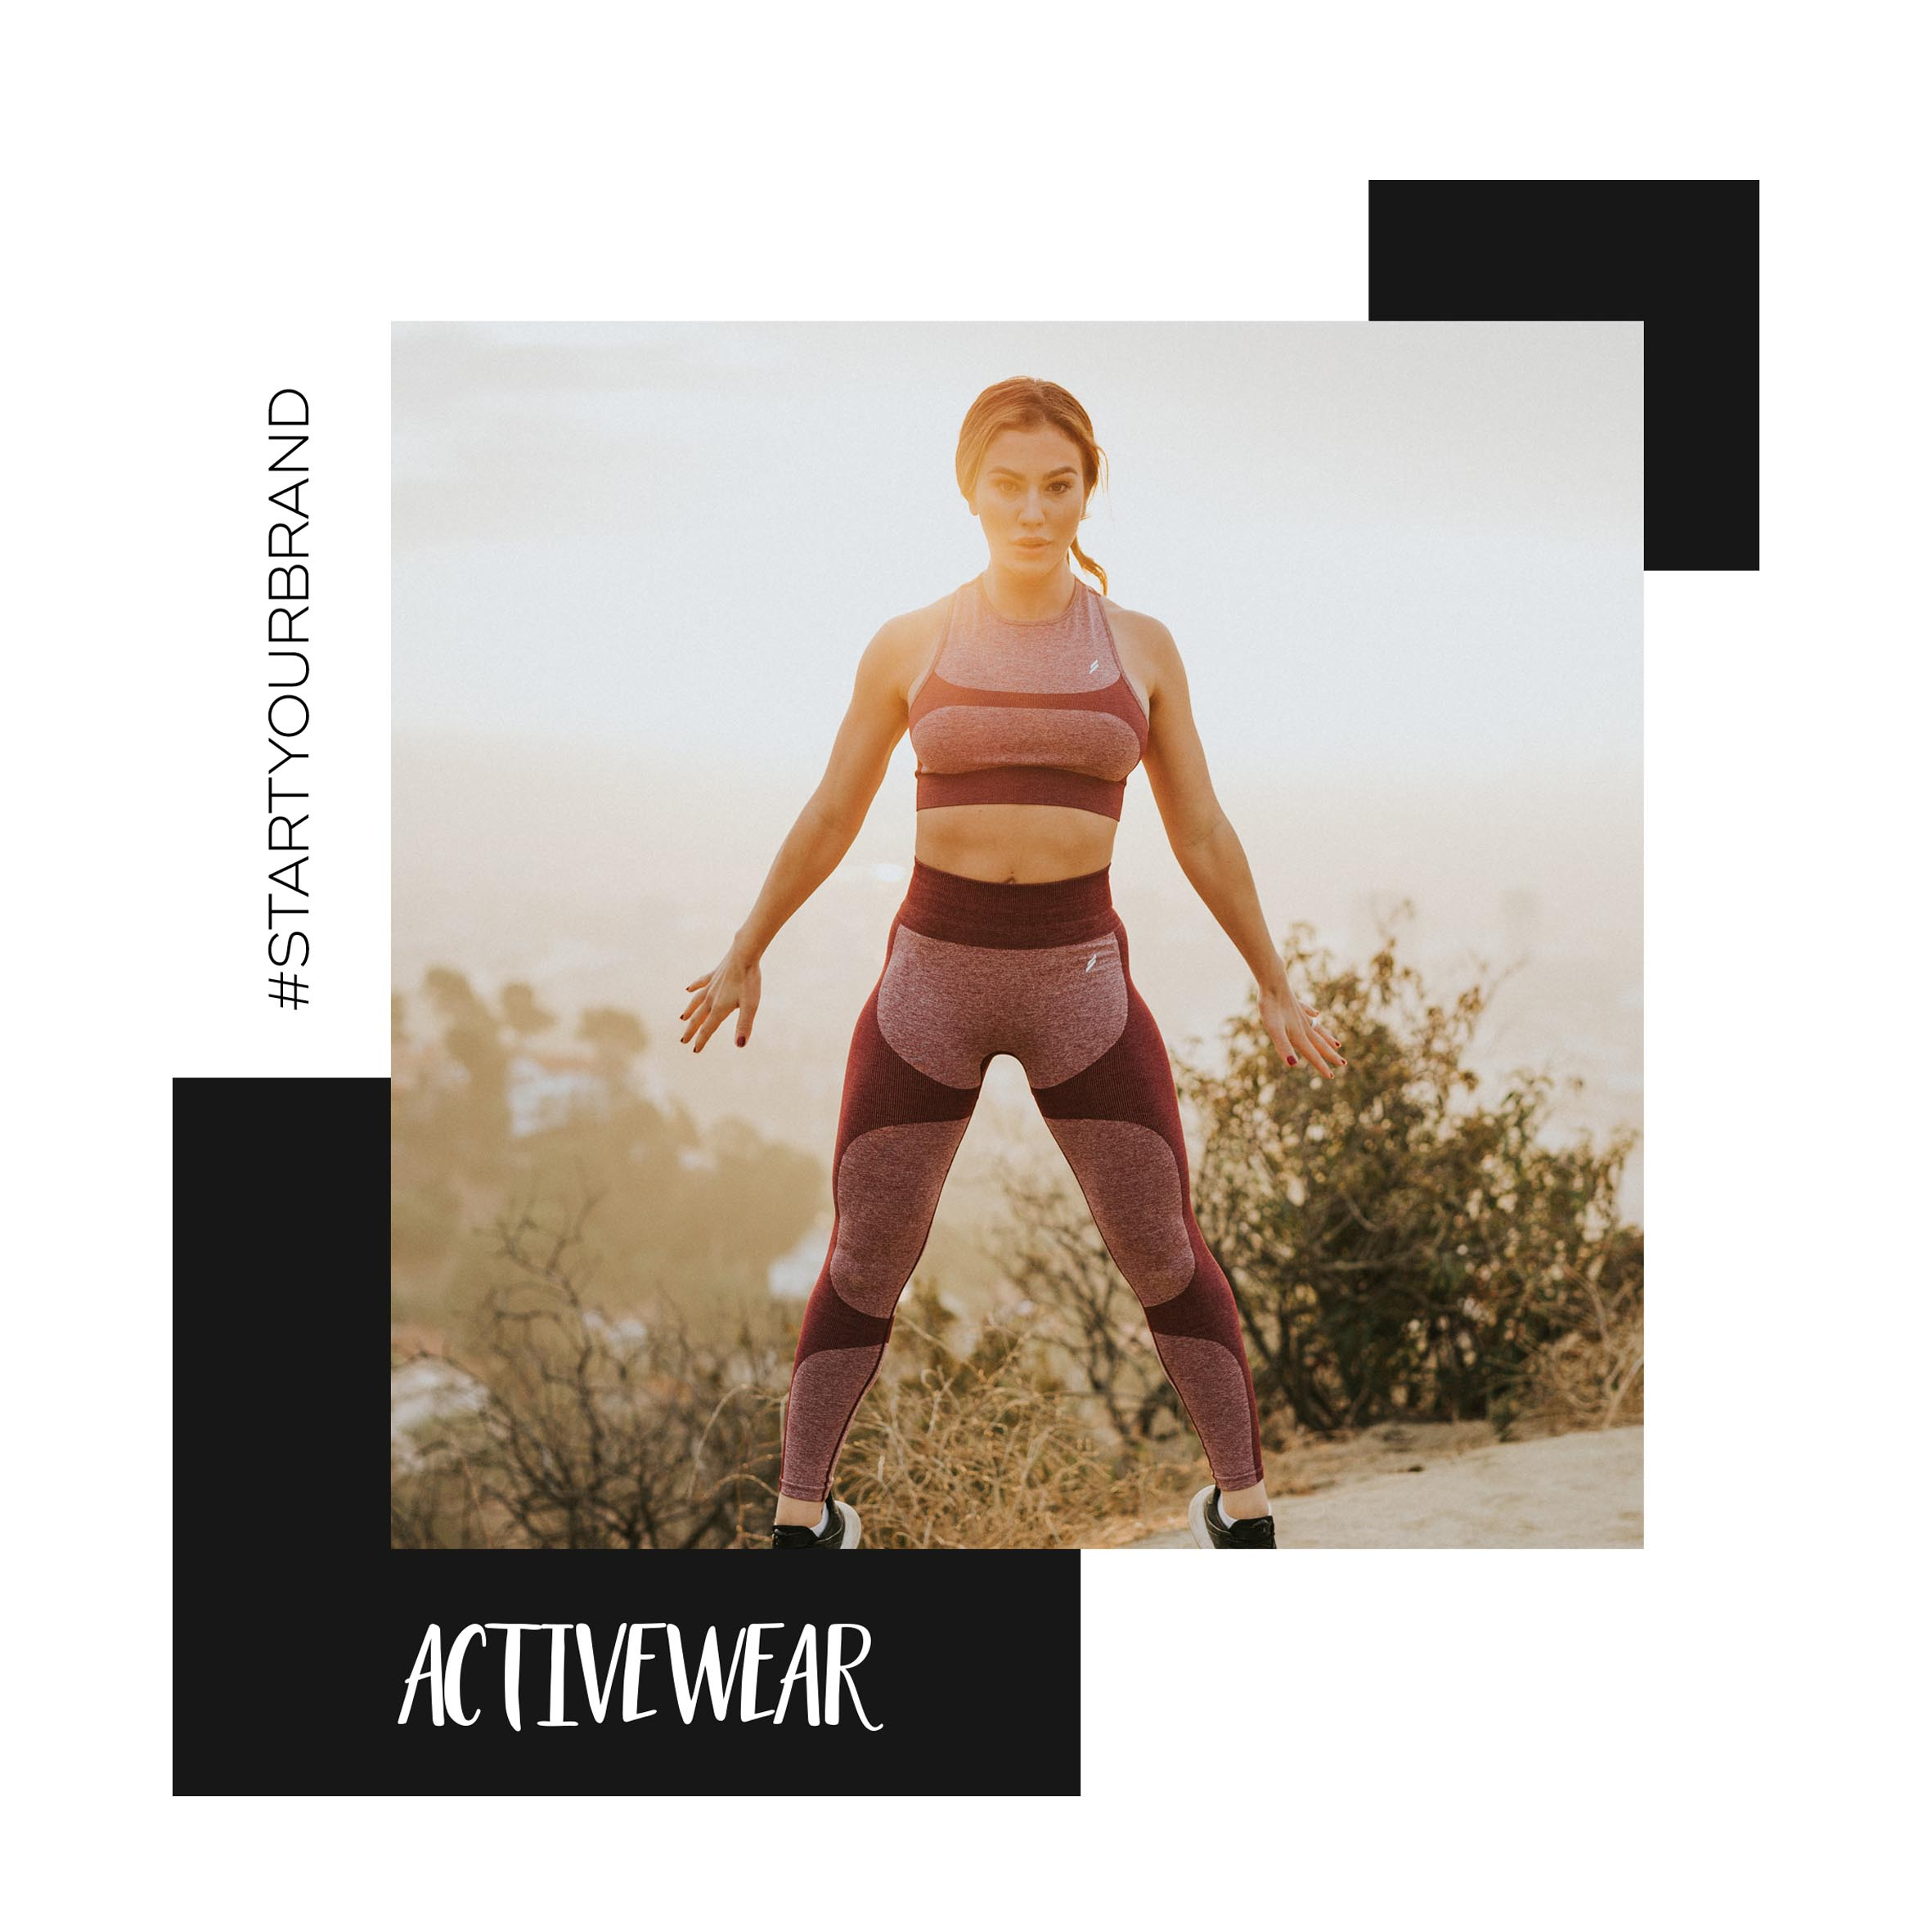 Start an activewear line